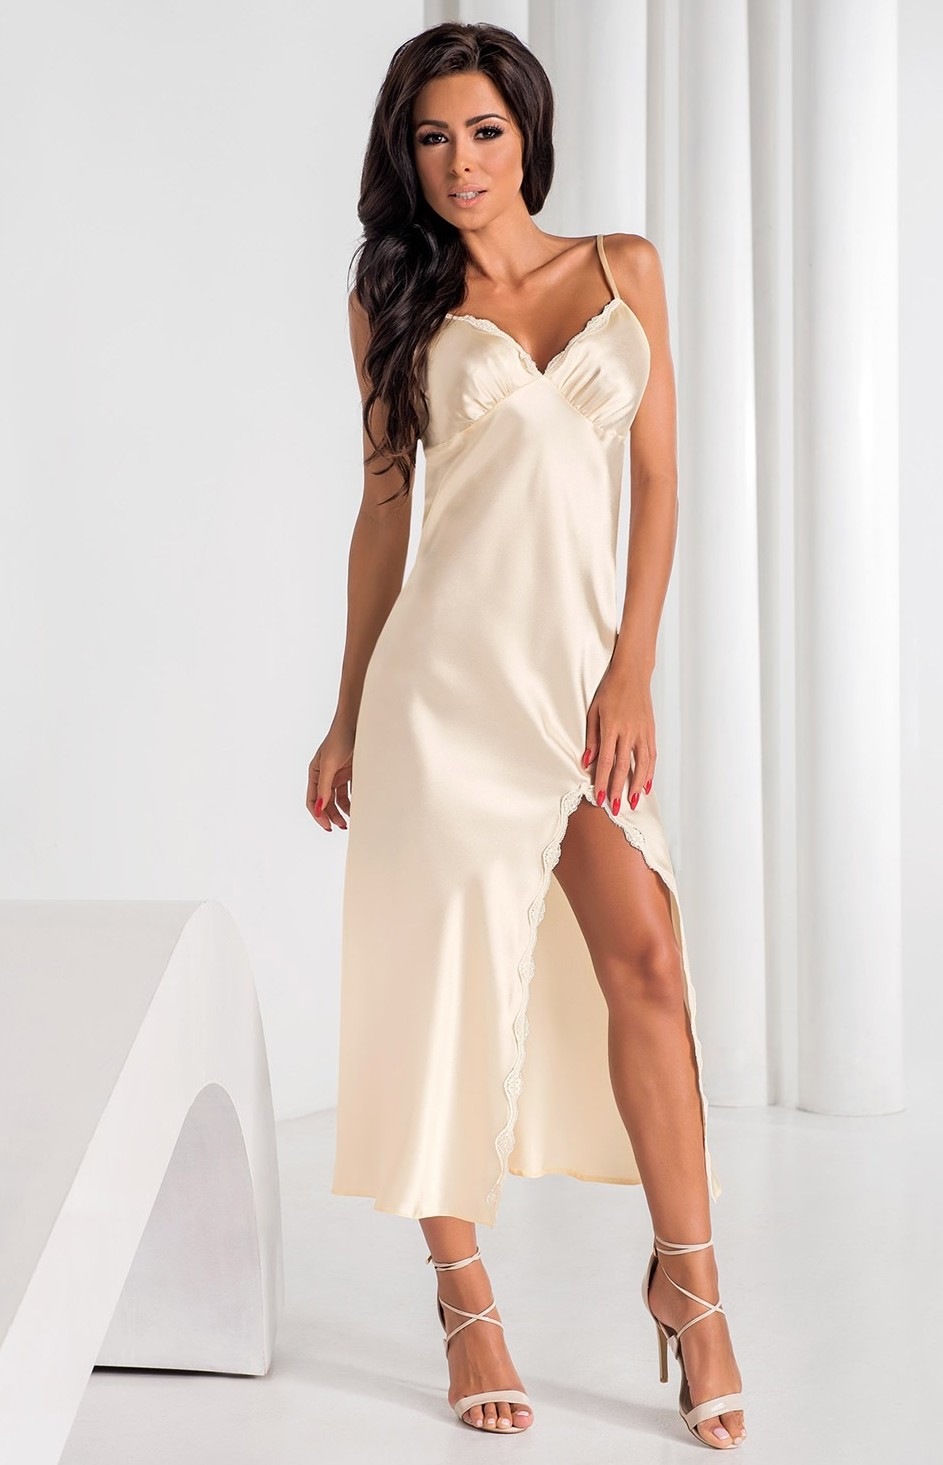 Long cream satin nightgown Arabella Iral IR-ARA-E : idresstocode ...